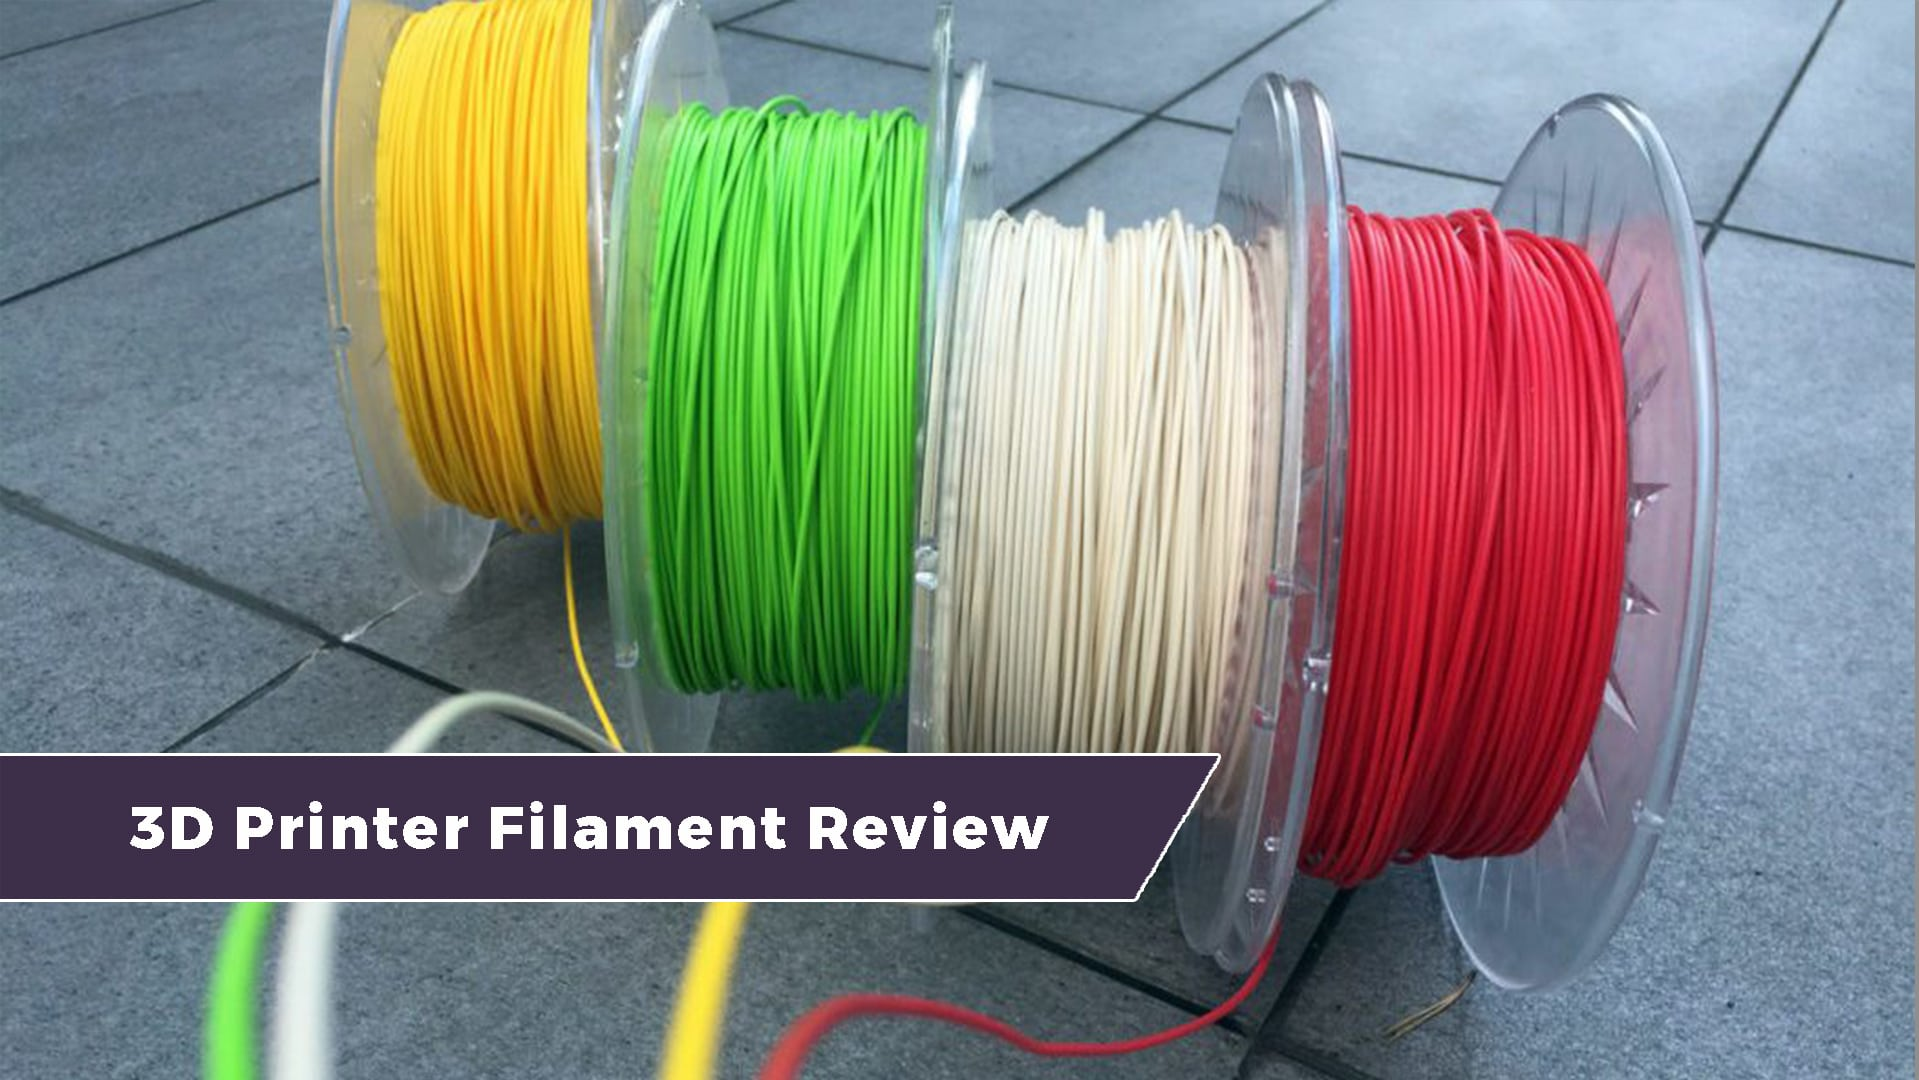 3d Printer Filament Review Best Types Of Printing Materials Flexiblecircuitboards3dprinted1jpg